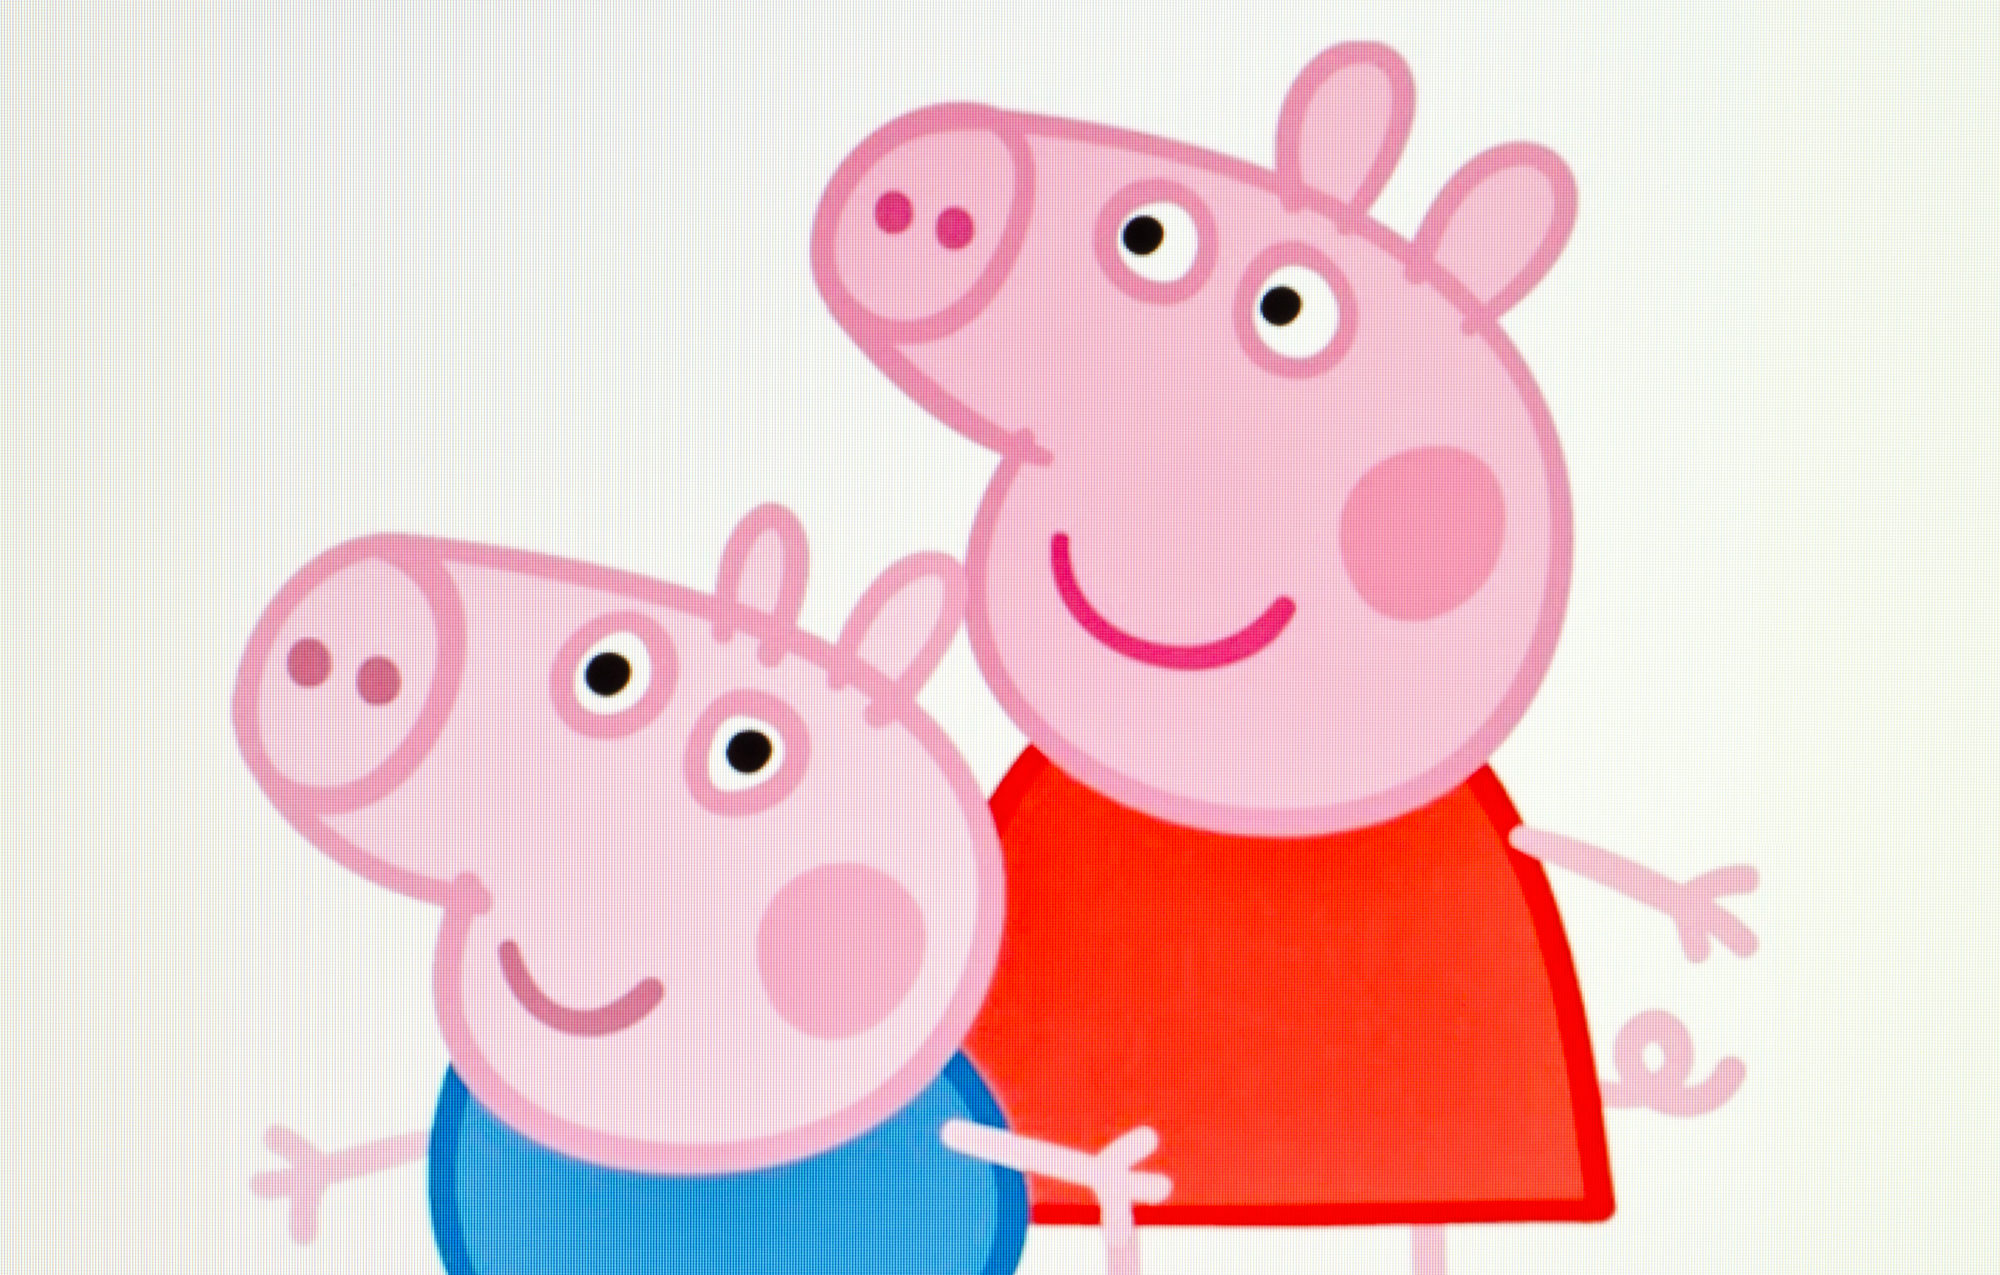 Planning a Peppa Pig Party for Your Little Piglets